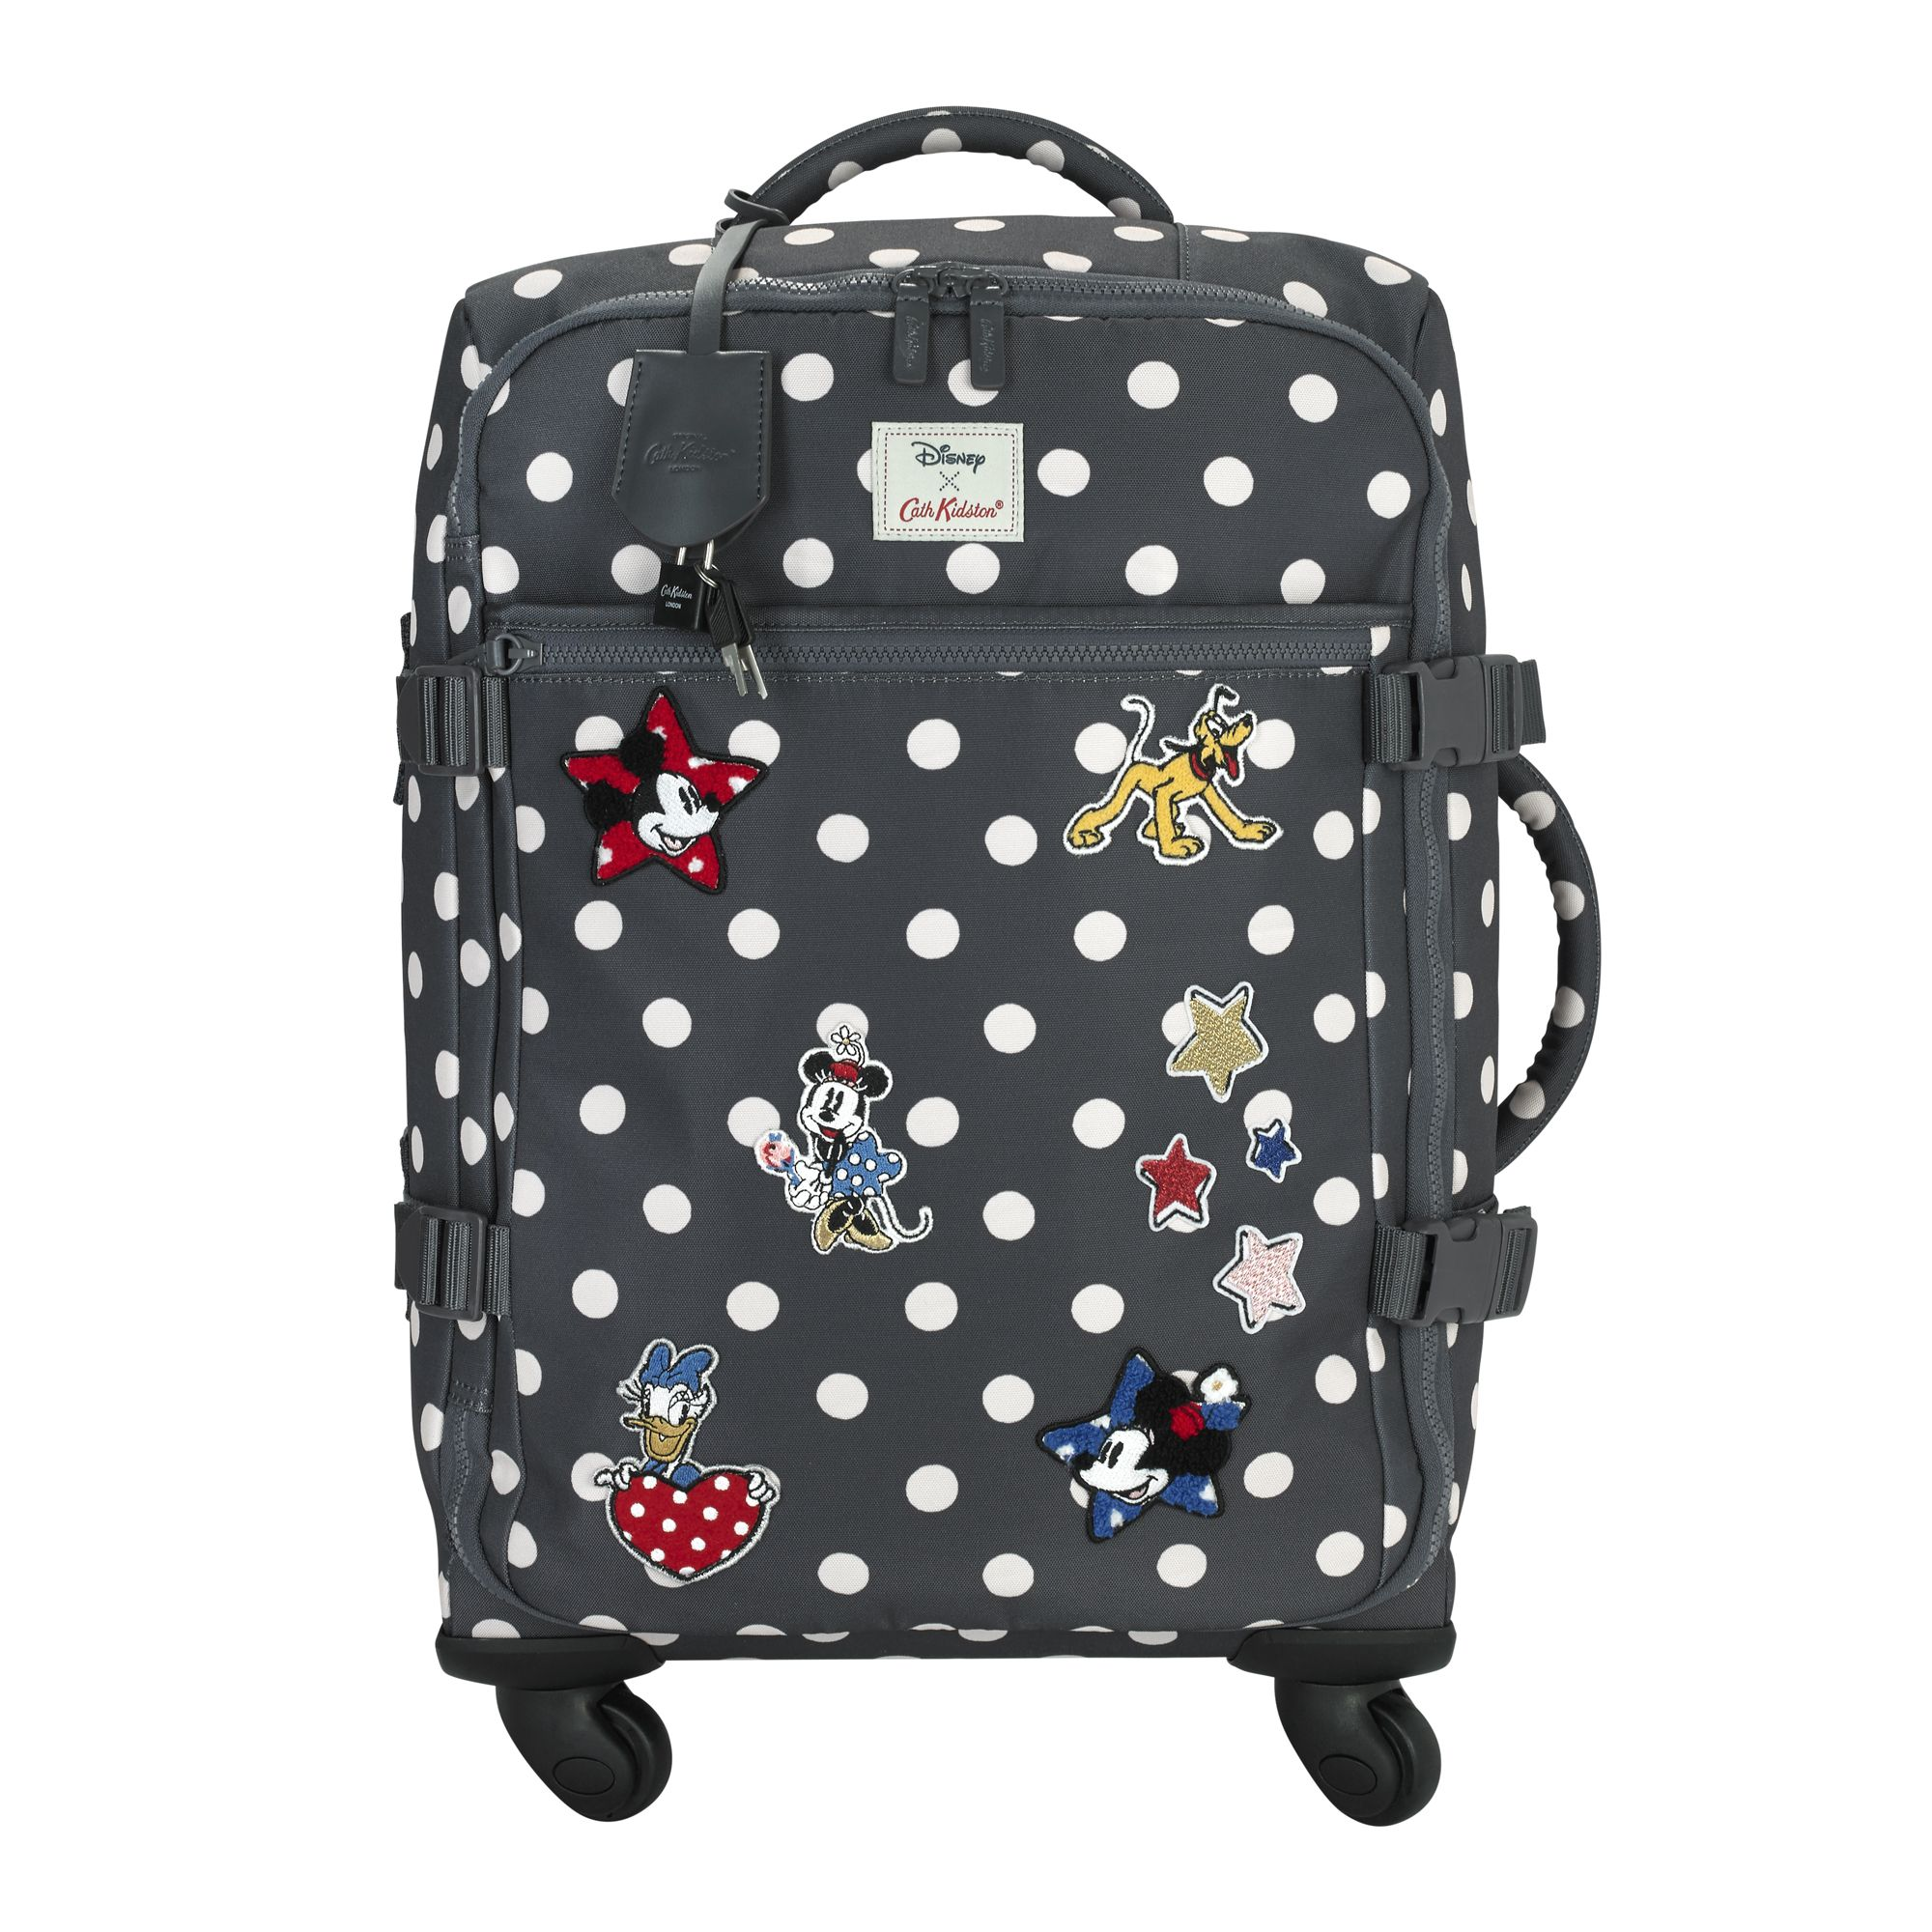 Cath Kidston Disney Mickey And Friends Collection A Look At Every Product In The Range